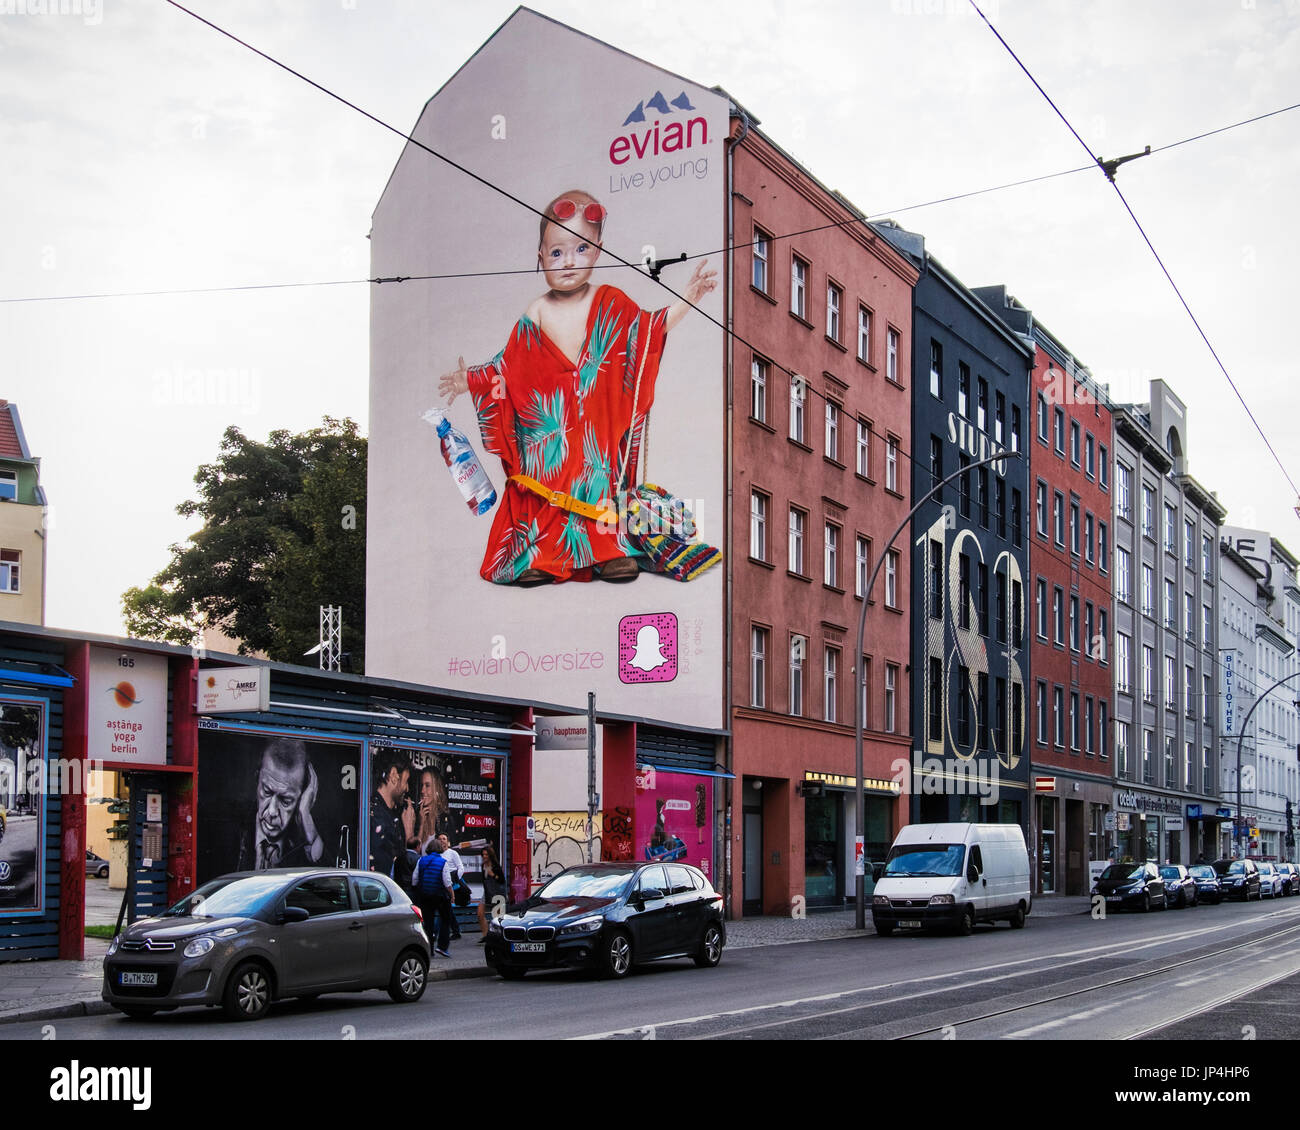 Berlin Mitte,Brunnestrasse. Giant mural advertisement advertising Evian Water on side of apartment building. Commercial art - Stock Image